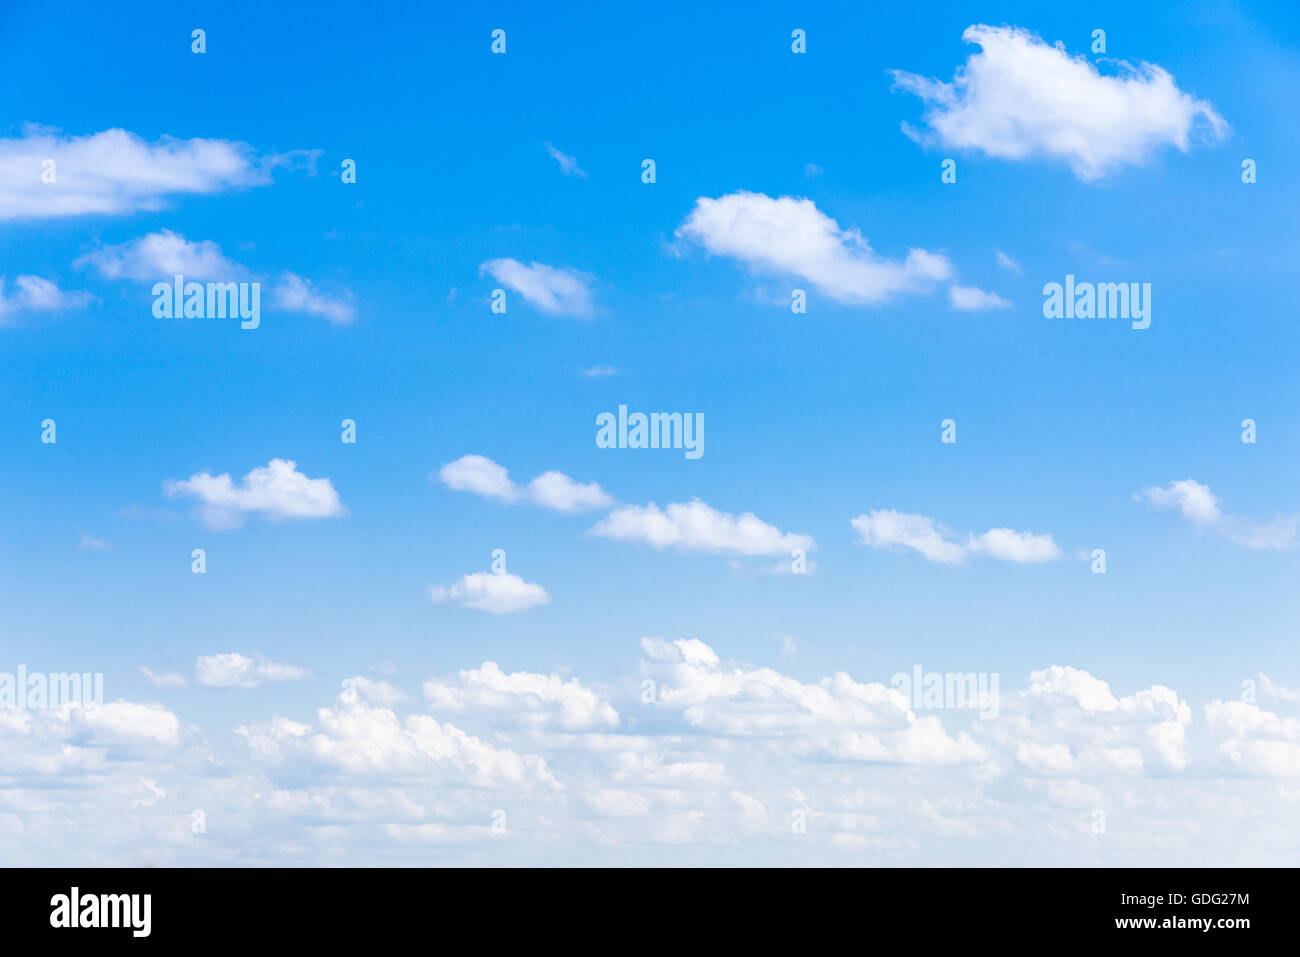 Clear blue sky with white fluffy clouds Stock Photo